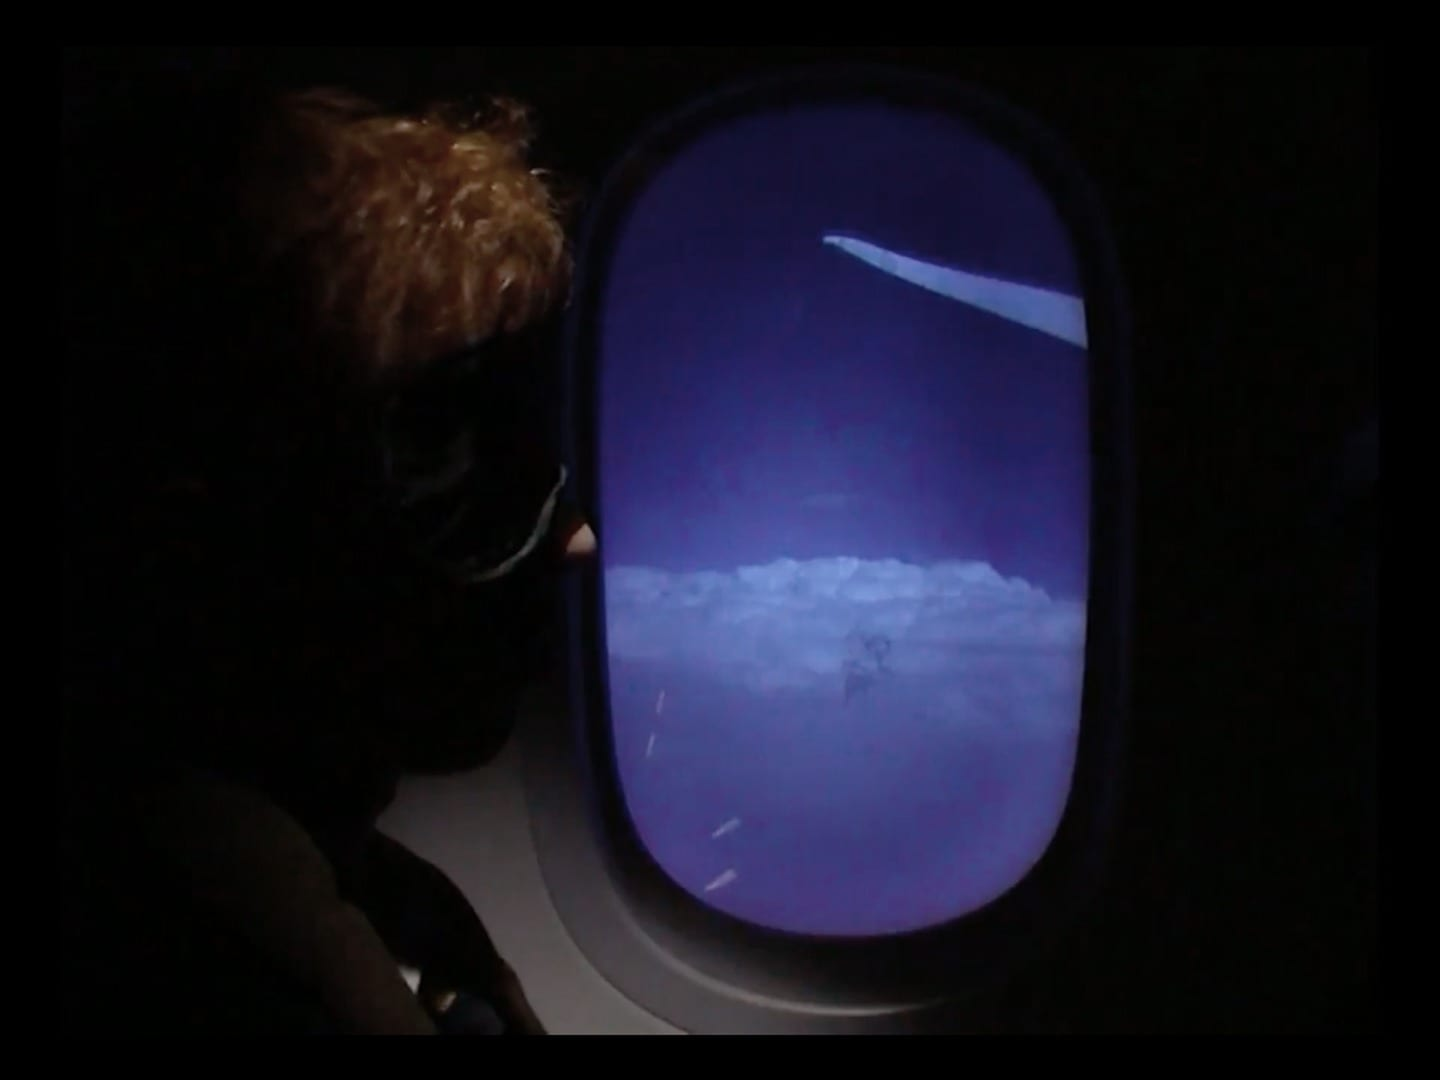 King Krule in his music video for Czech One